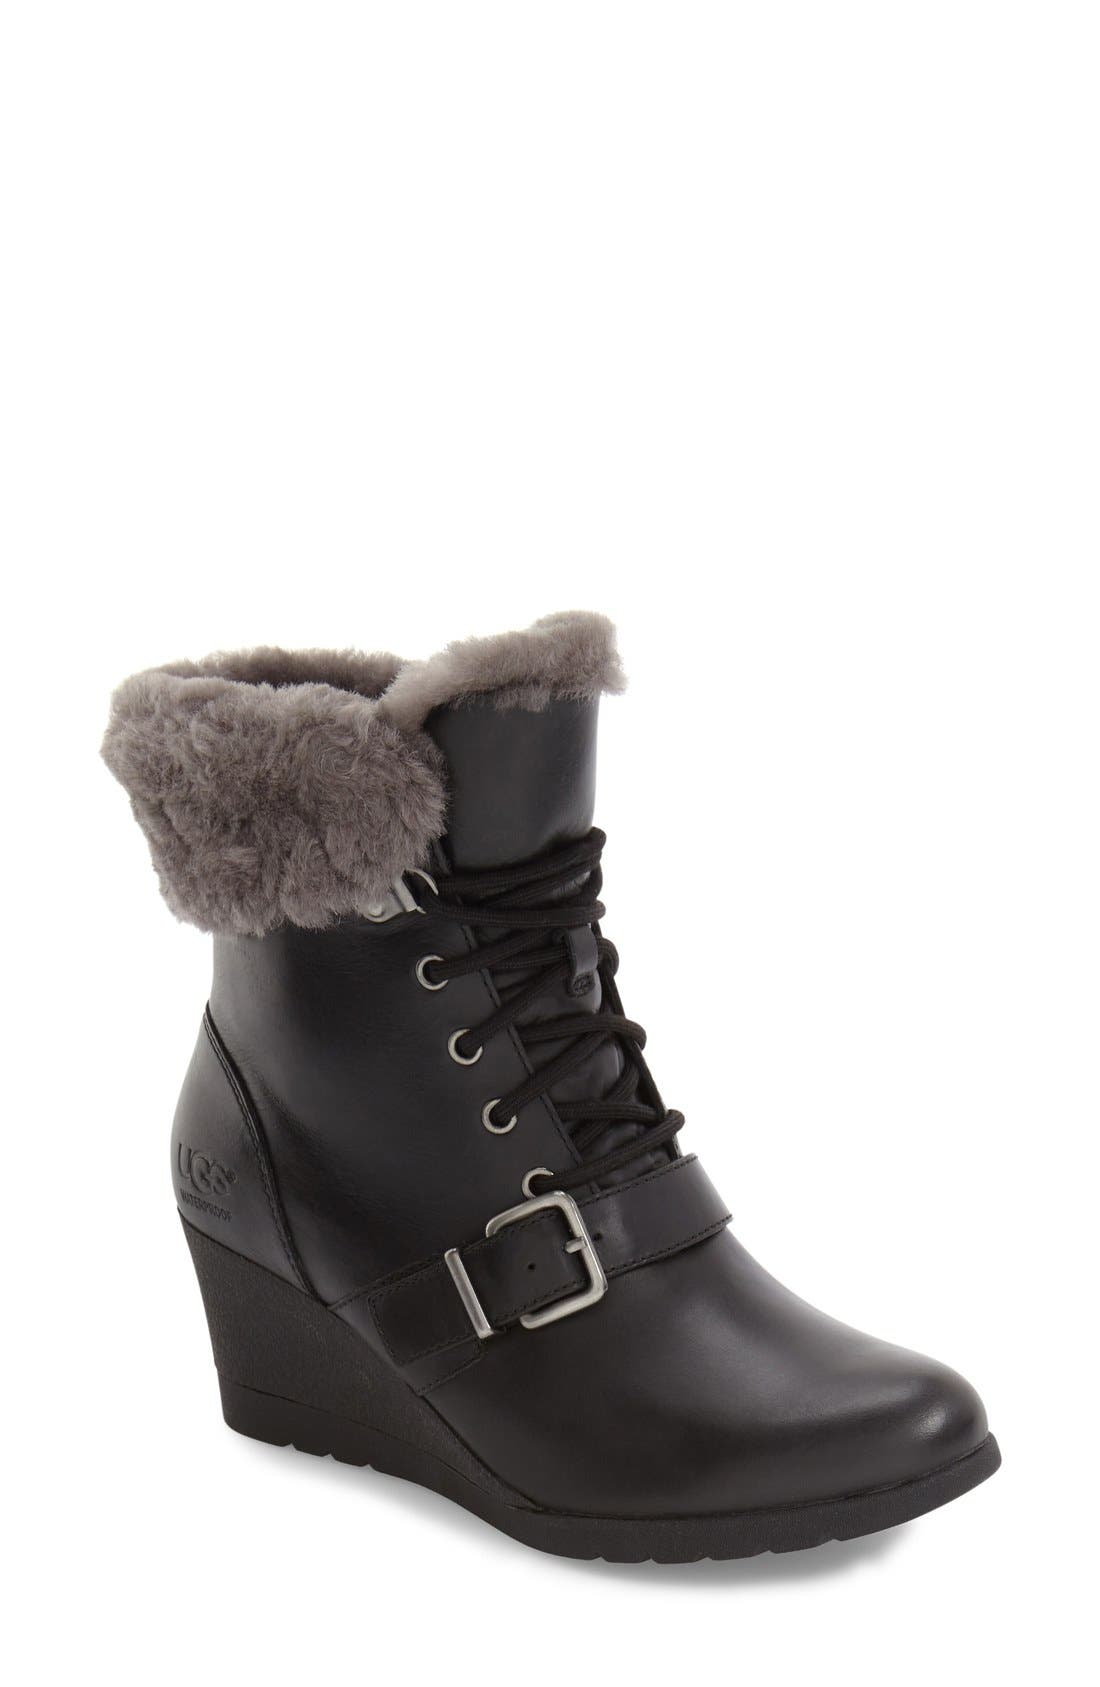 Janney Waterproof Thinsulate<sup>®</sup> Wedge Bootie,                         Main,                         color, 001